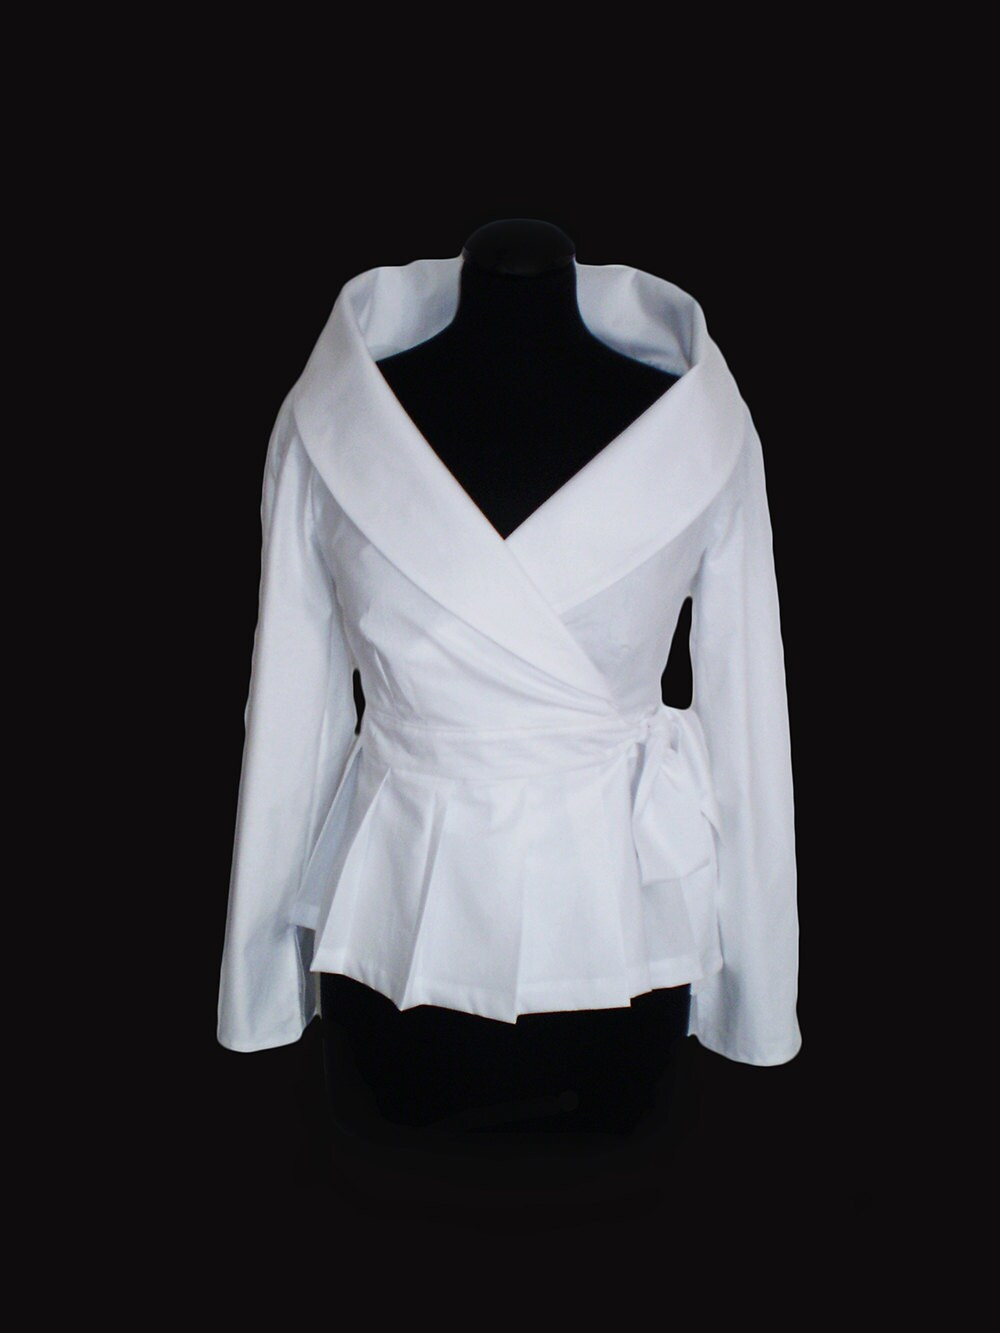 cca13023400a07 White shirtWomen White Wrap Blousecotton blouse Smart